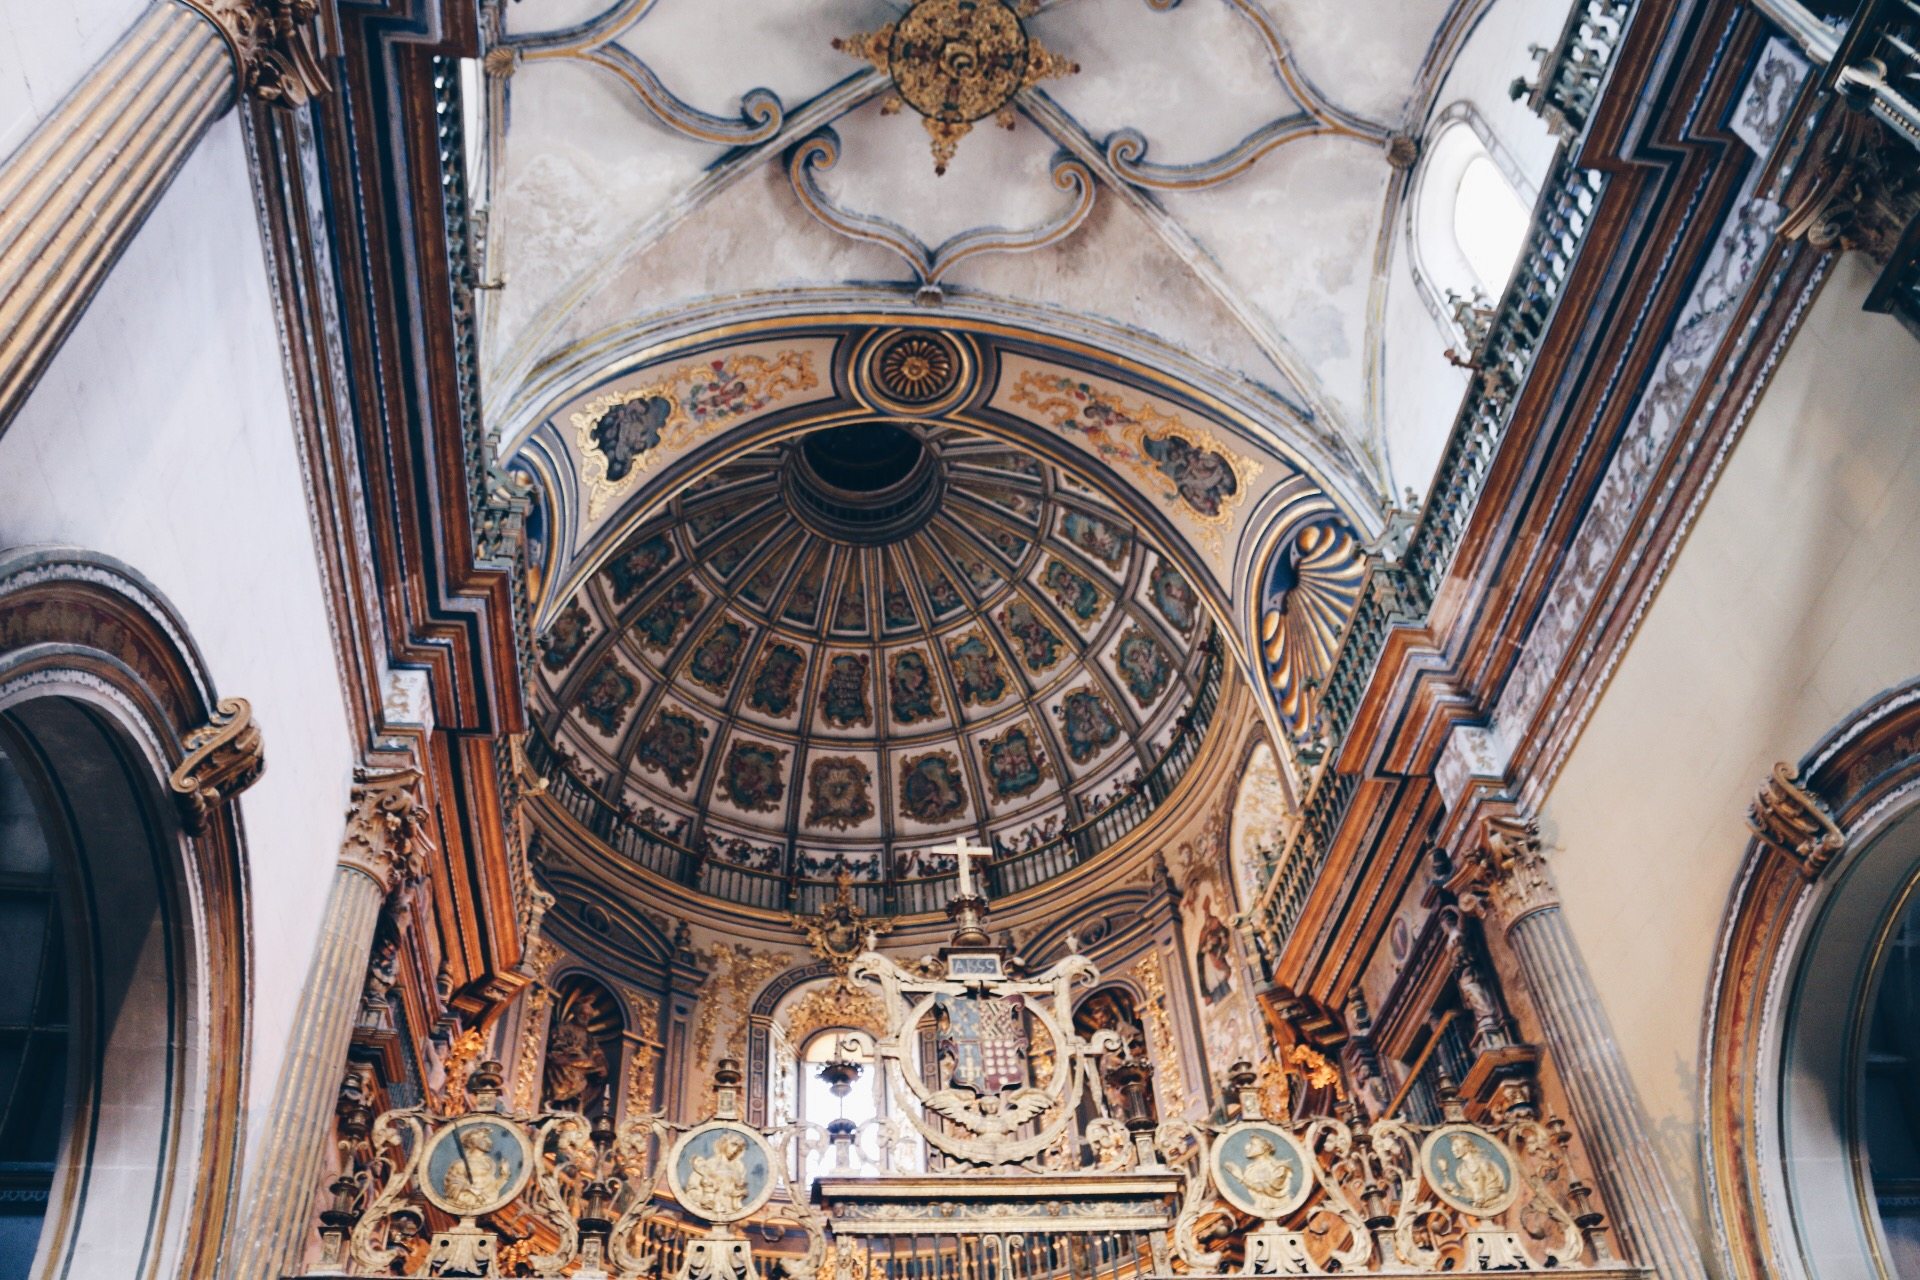 THE INTERIOR OF CAPILLA DEL SALVADOR BY BARTOLOME DE JAEN